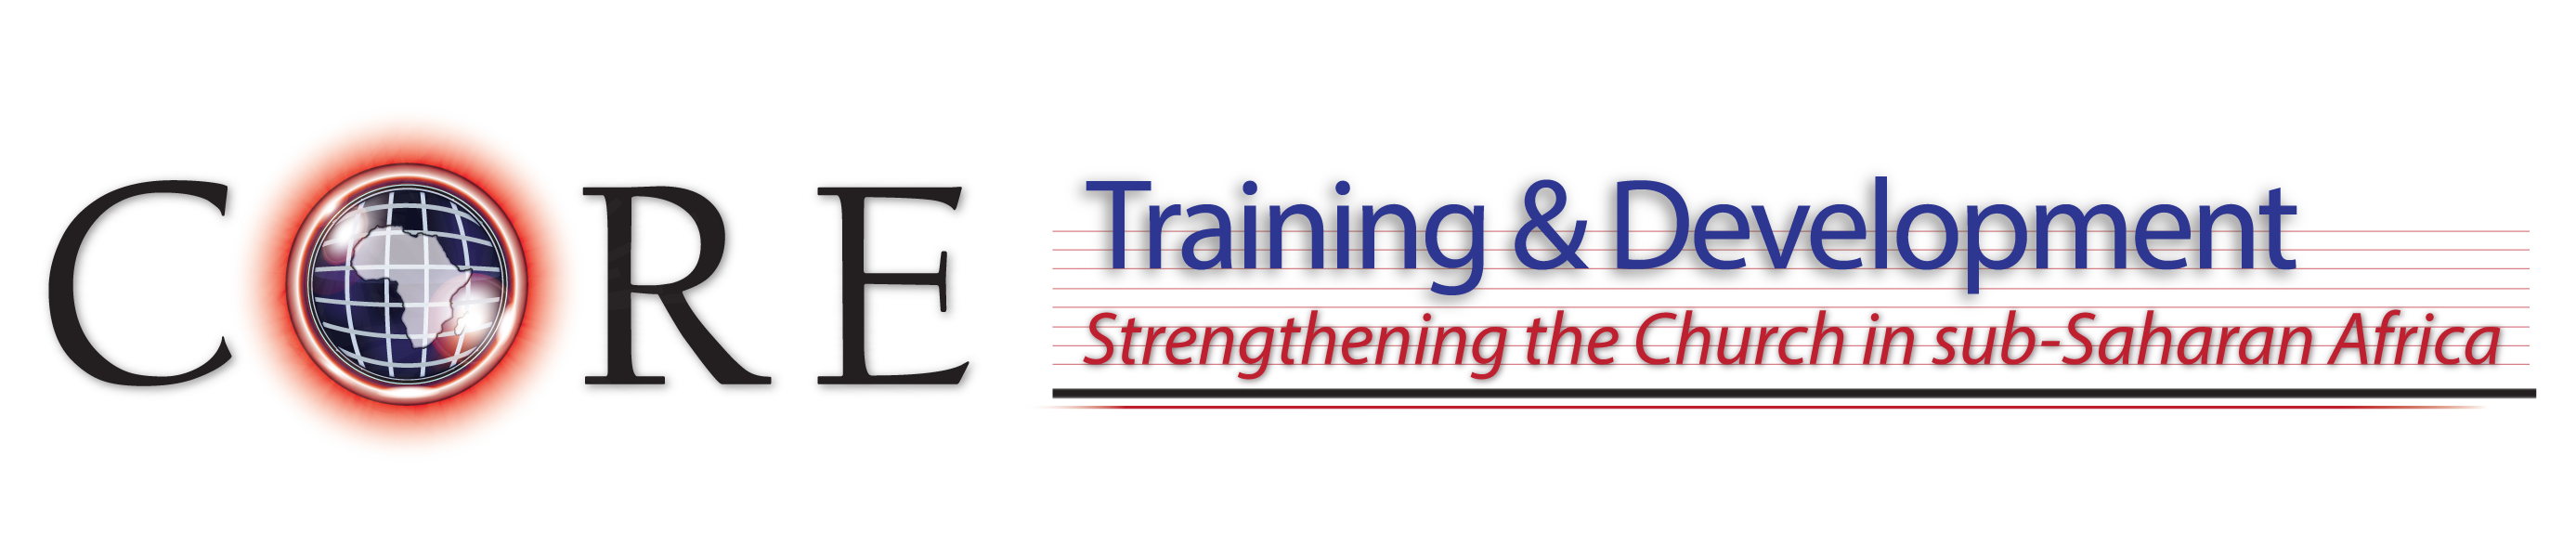 Core Training and Development